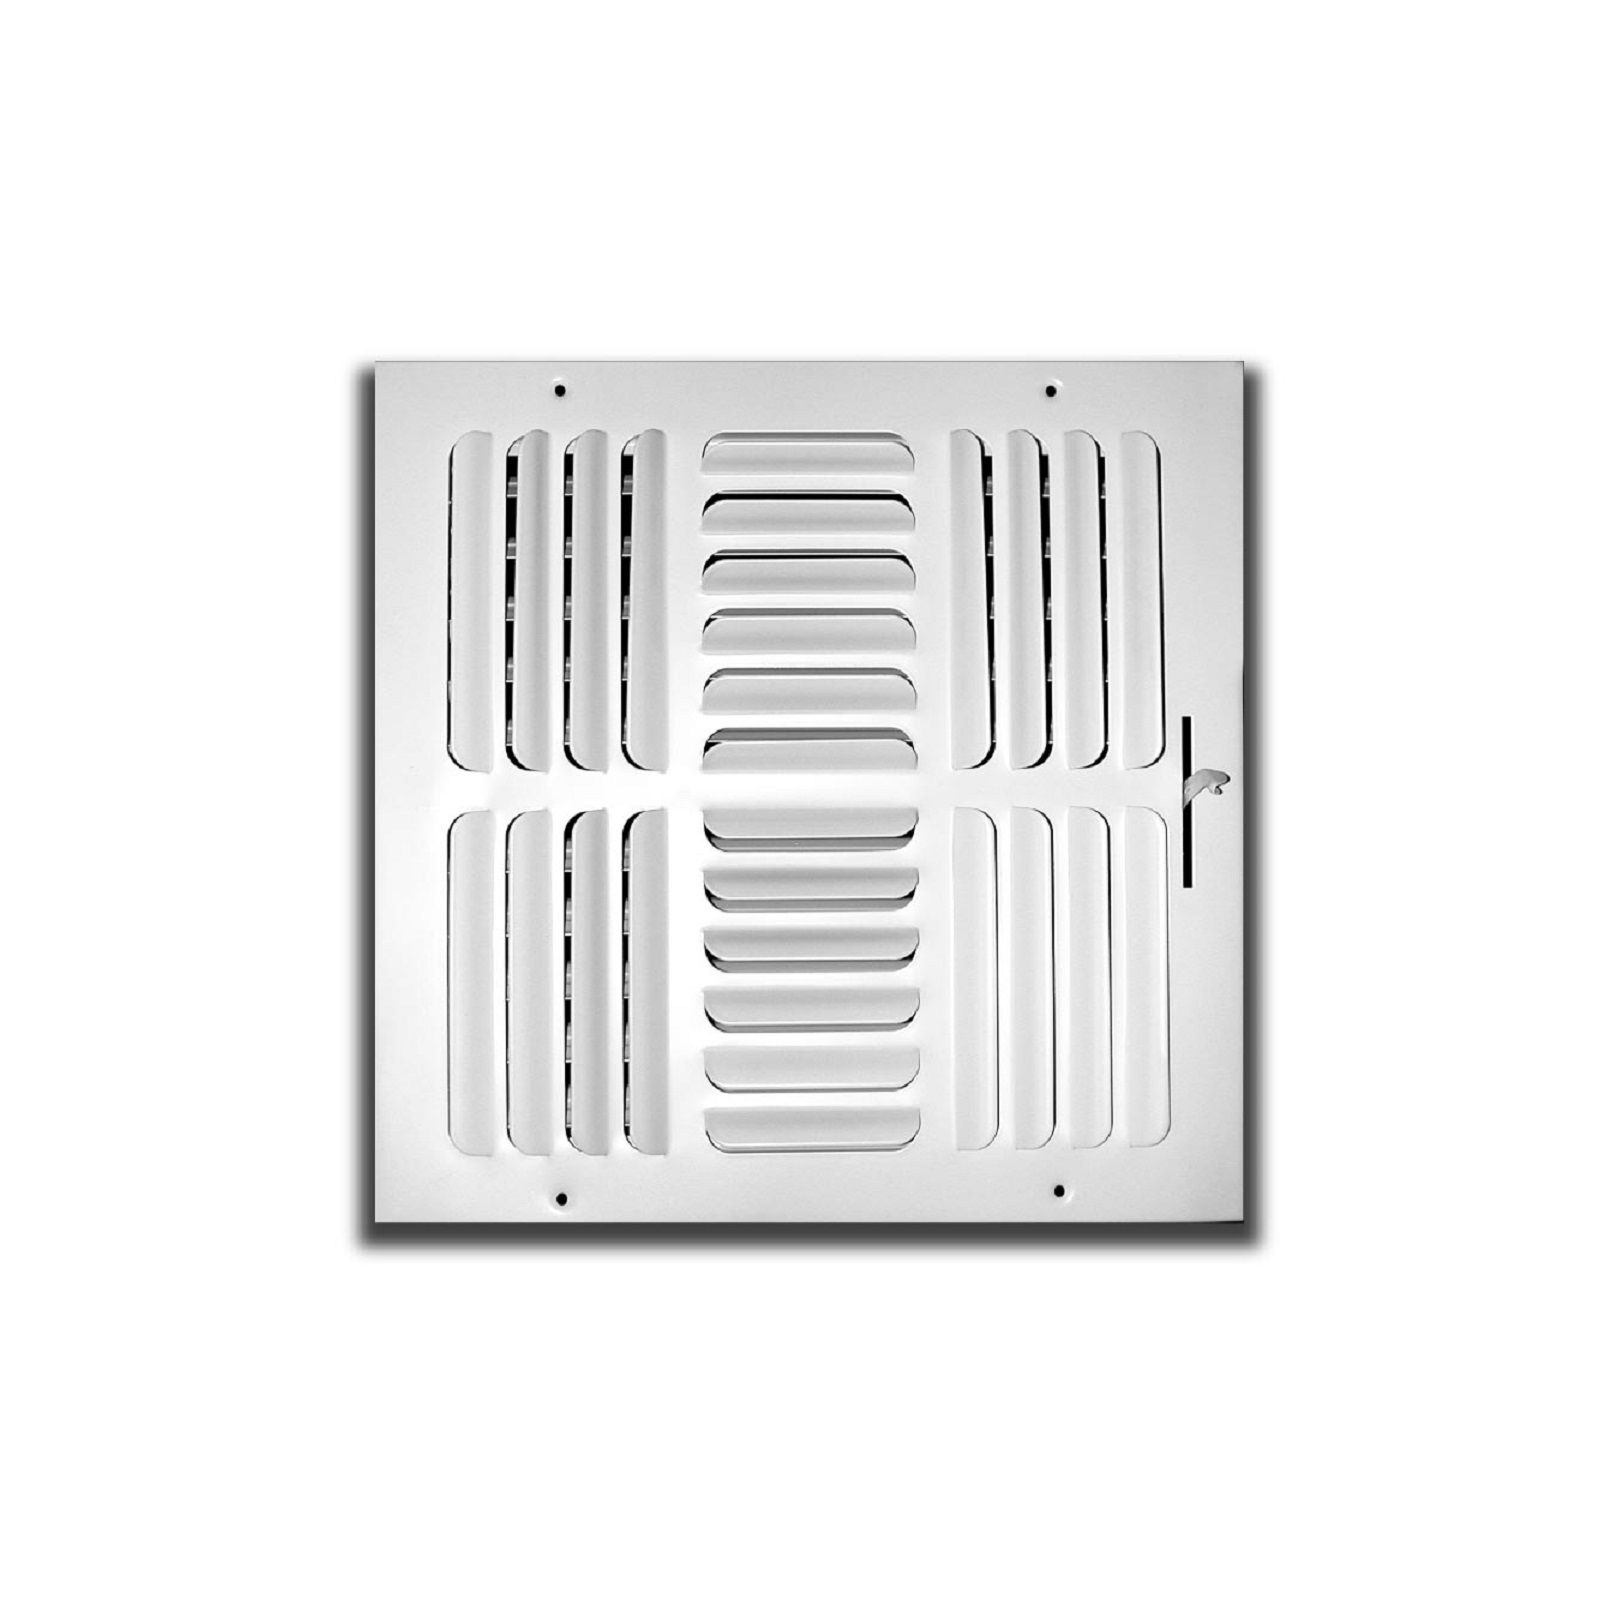 "TRUaire 404M 10X10 - Fixed Curved Blade Wall/Ceiling Register With Multi Shutter Damper, 4-Way, White, 10"" X 10"""